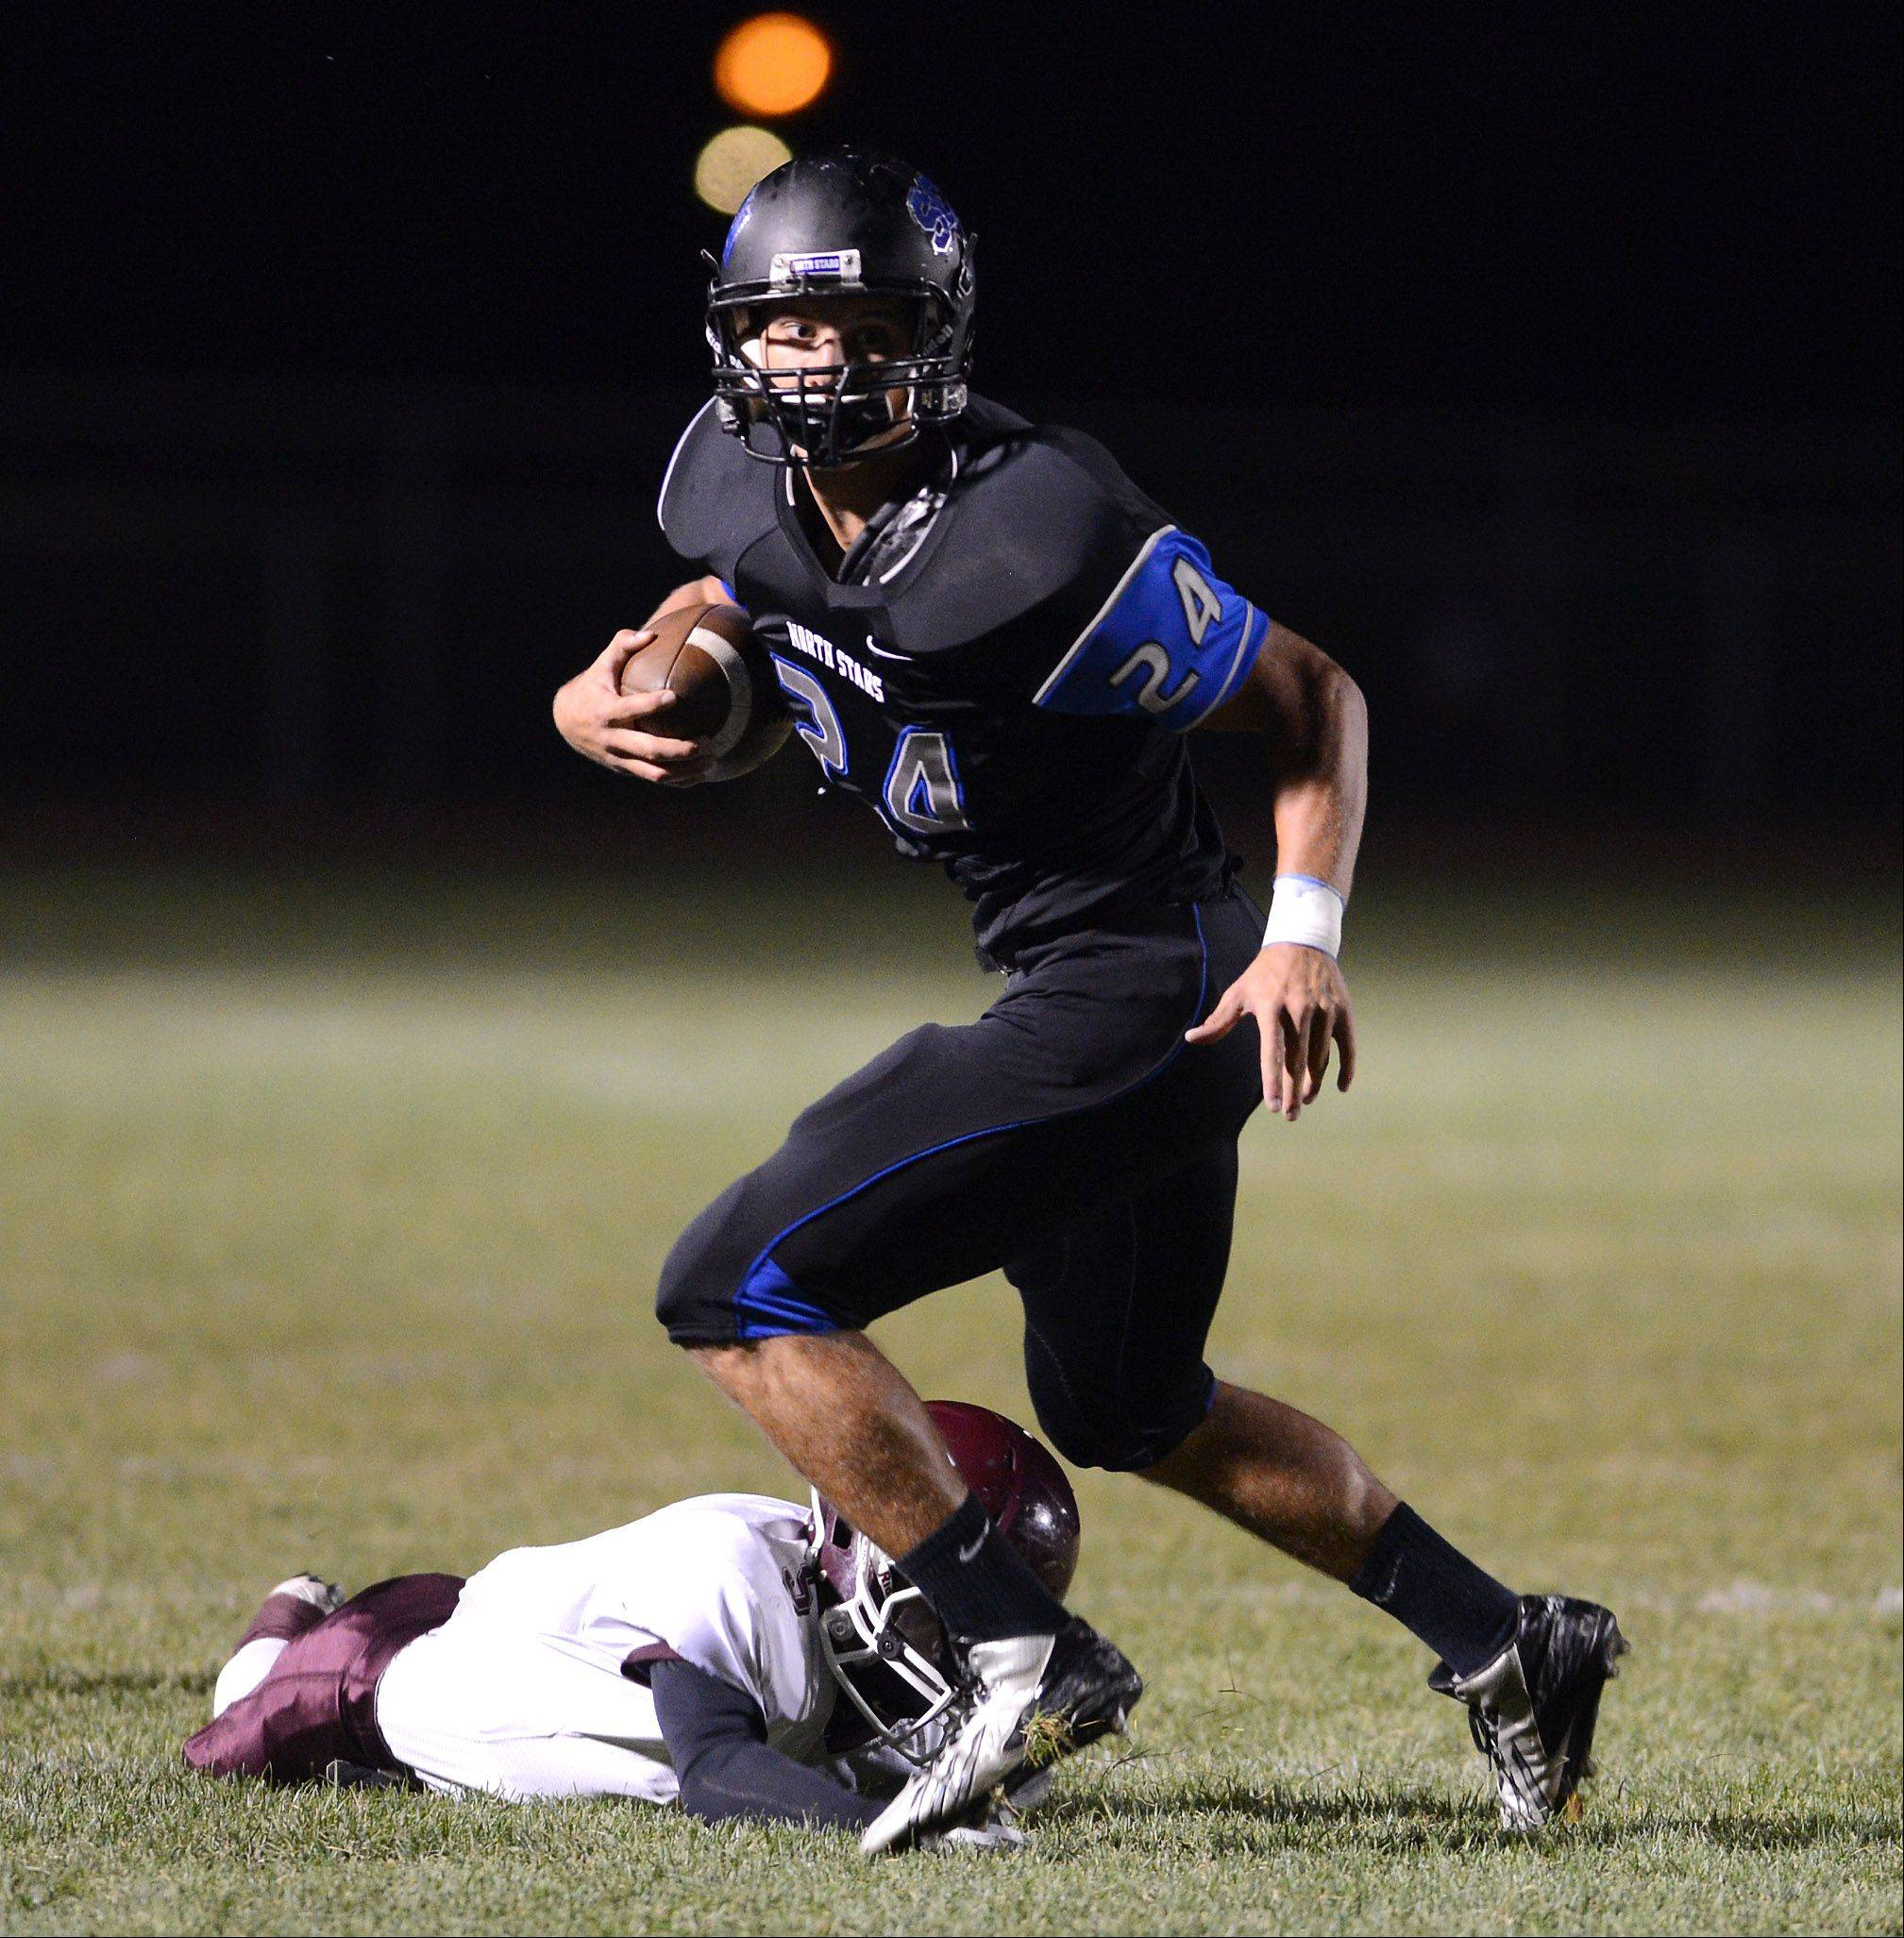 St. Charles North's Evan Kurtz heads upfield for a long gain after breaking a tackle attempt by Elgin's Clay White .